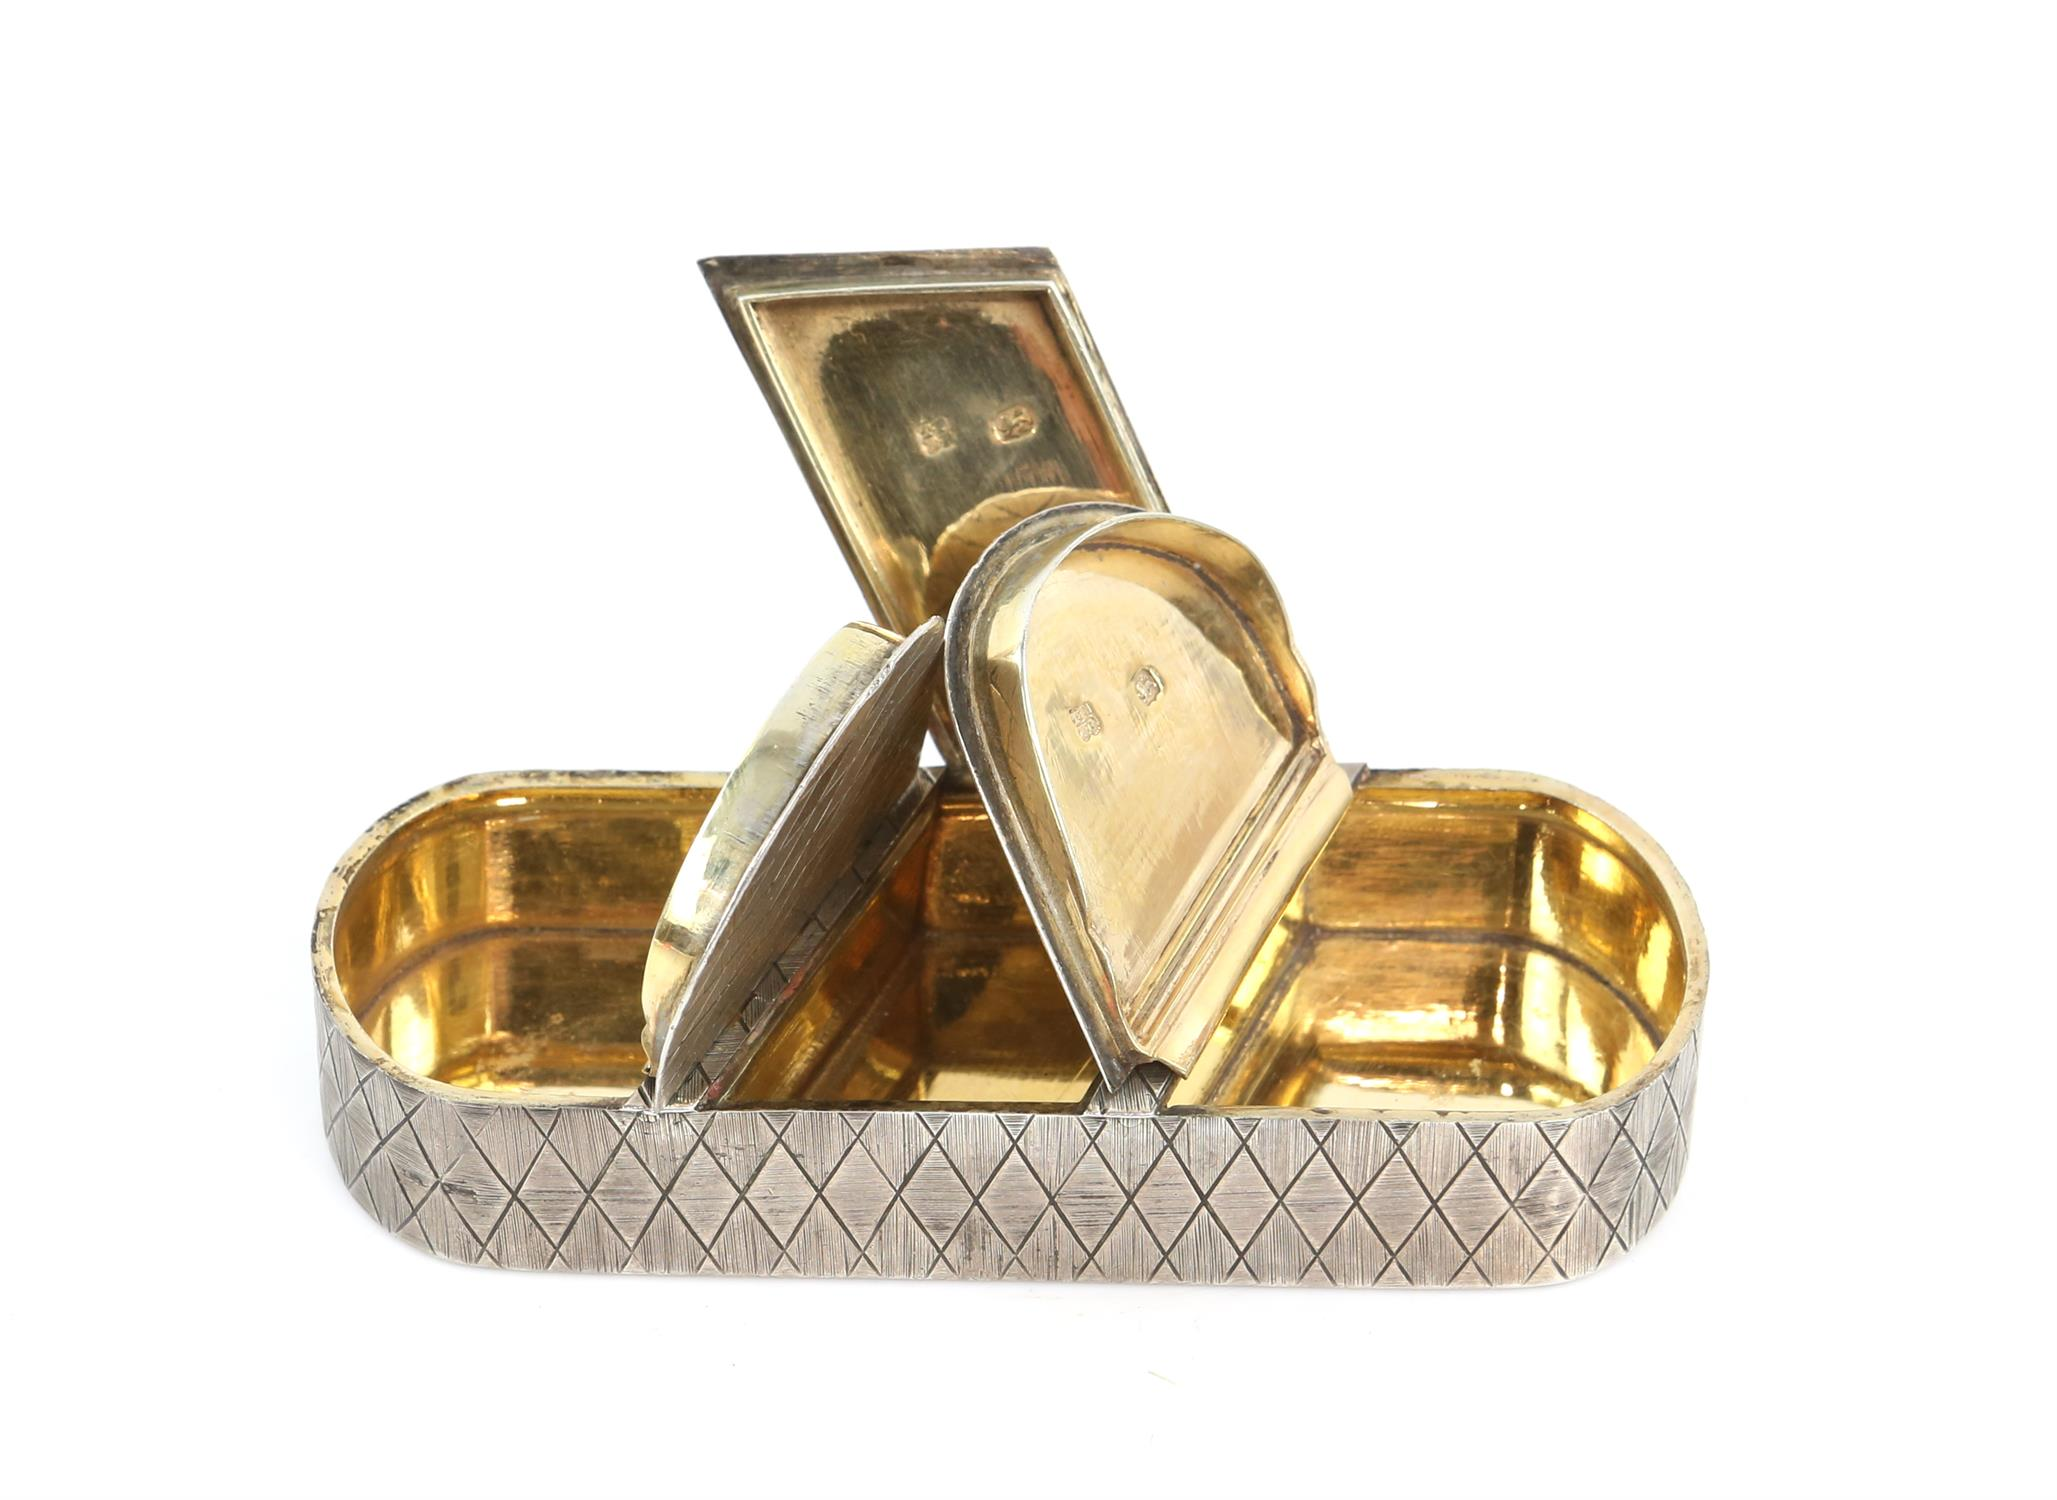 George III silver triple oval snuff box by Thomas Phipps & Edward Robinson, with diamond patterned - Image 7 of 7